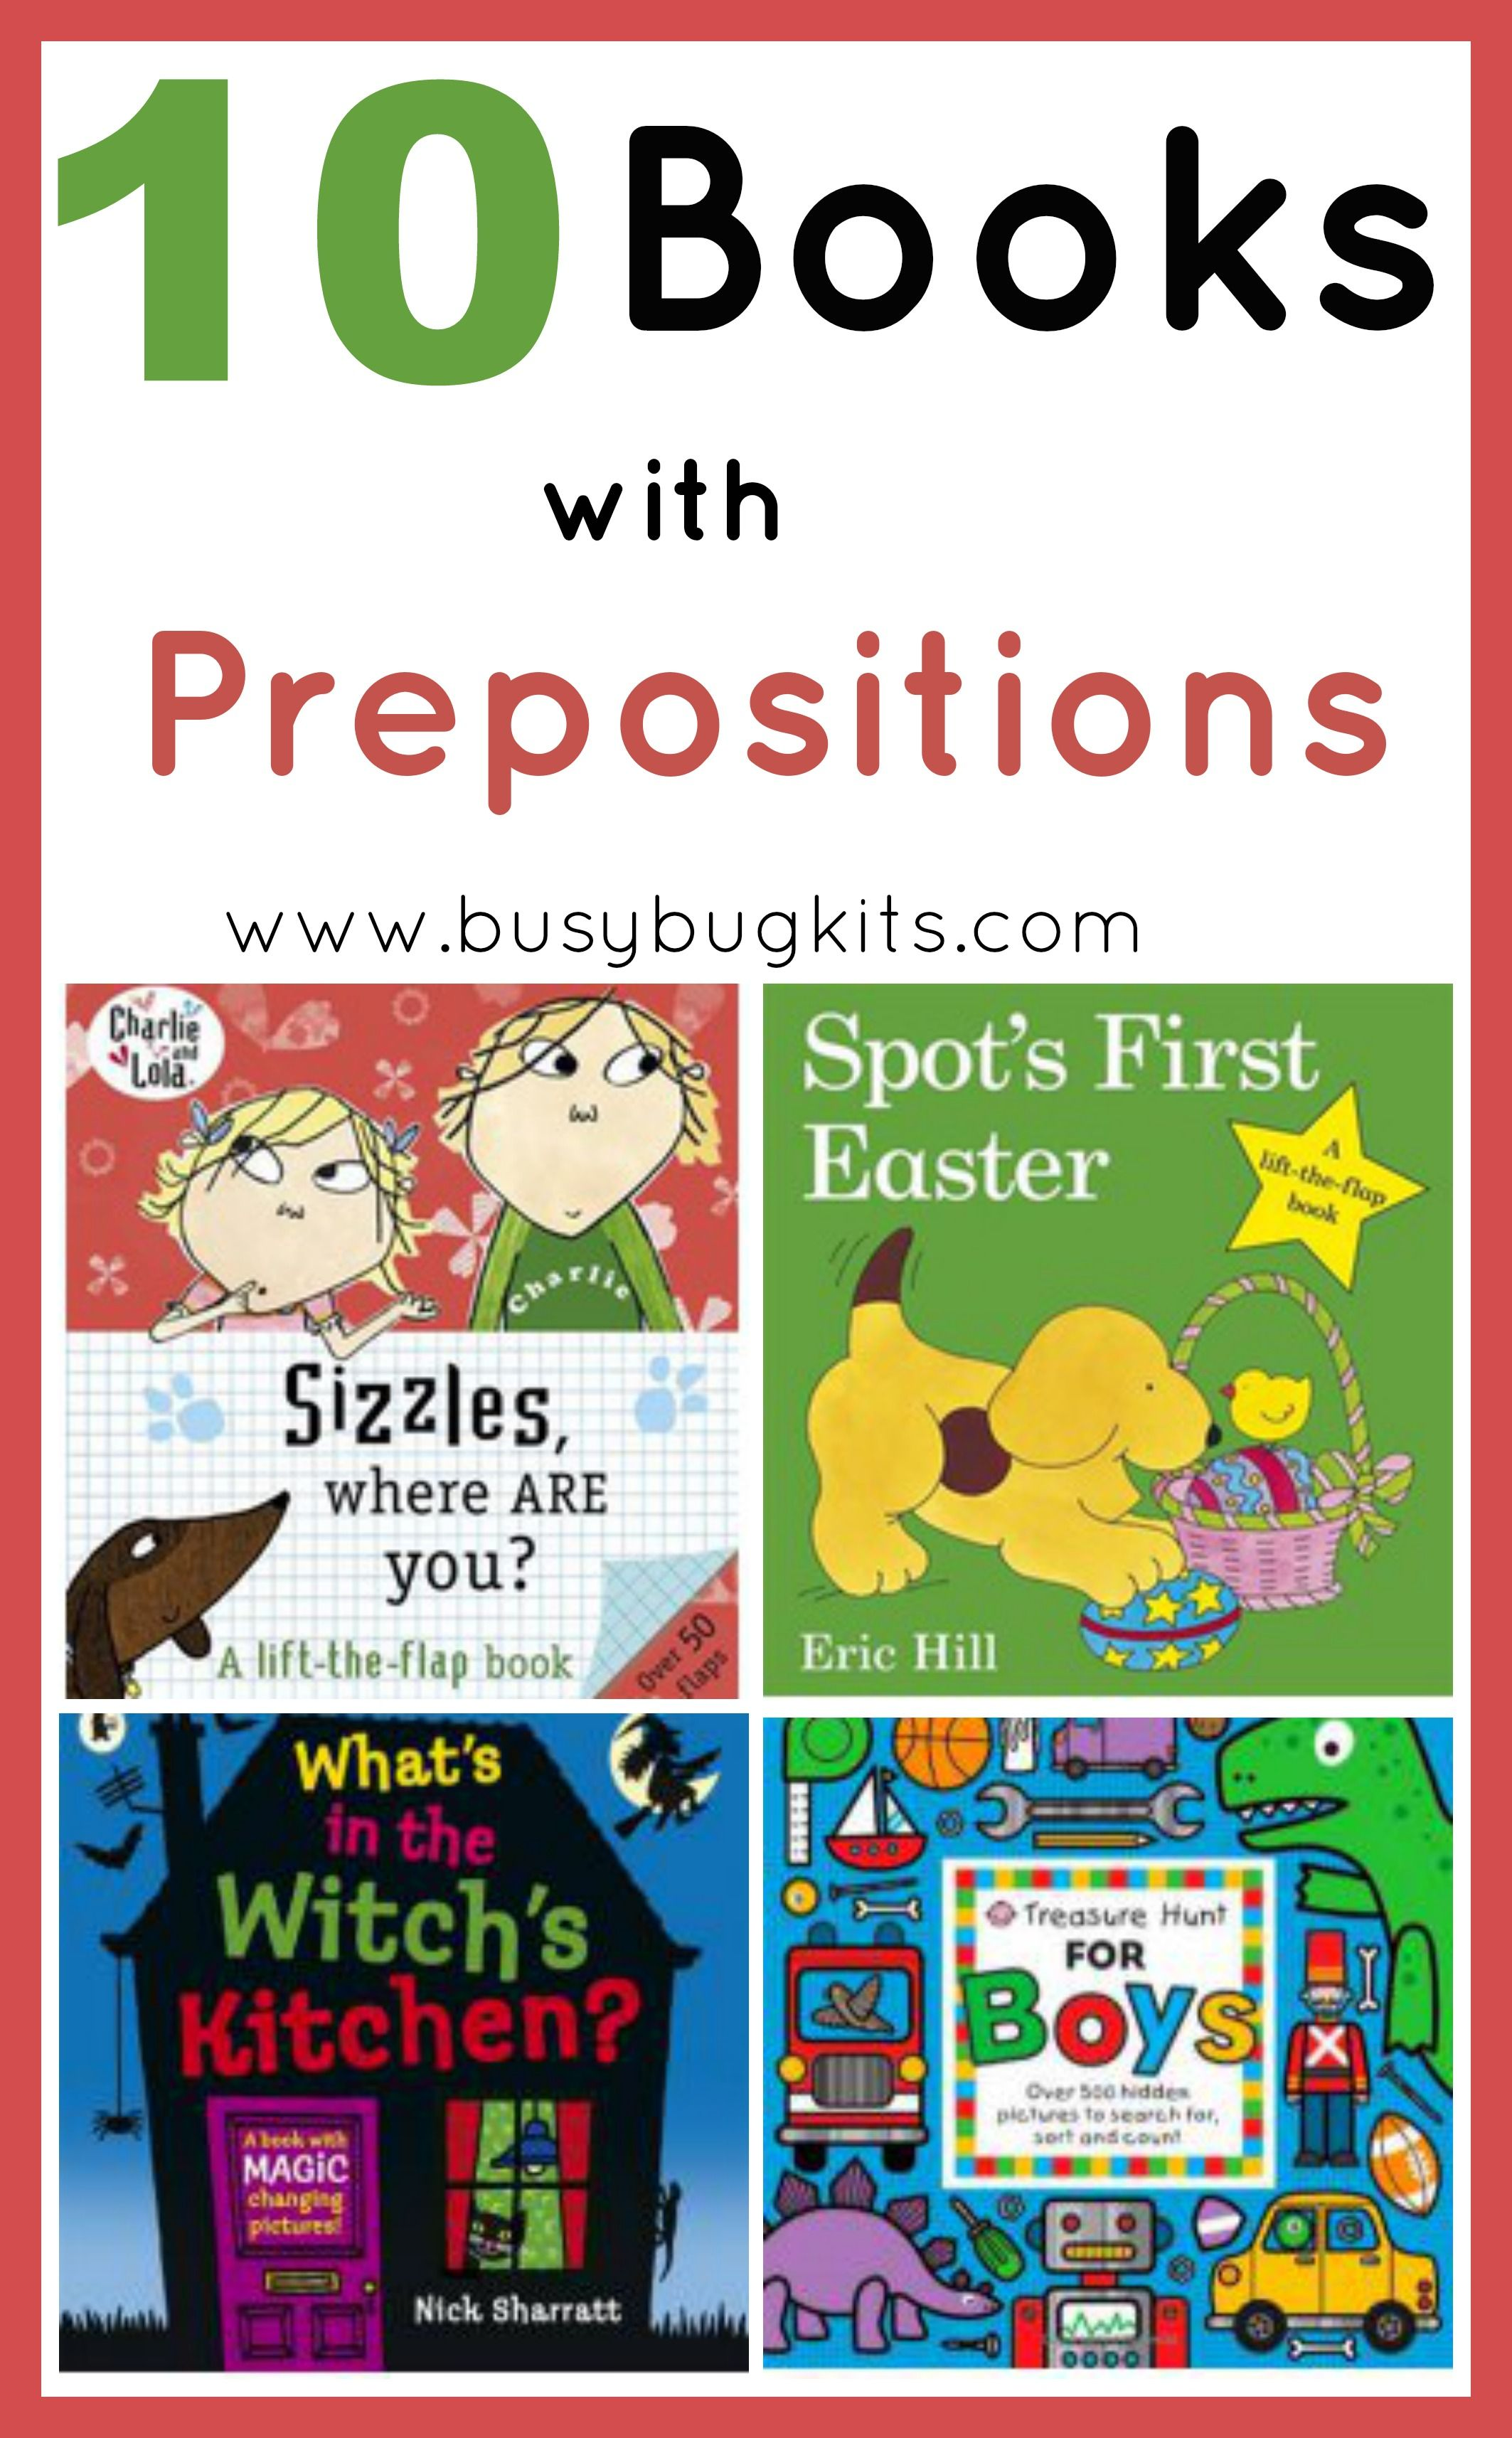 Busybug Kits 10 Books With Prepositions Pinned By Sos